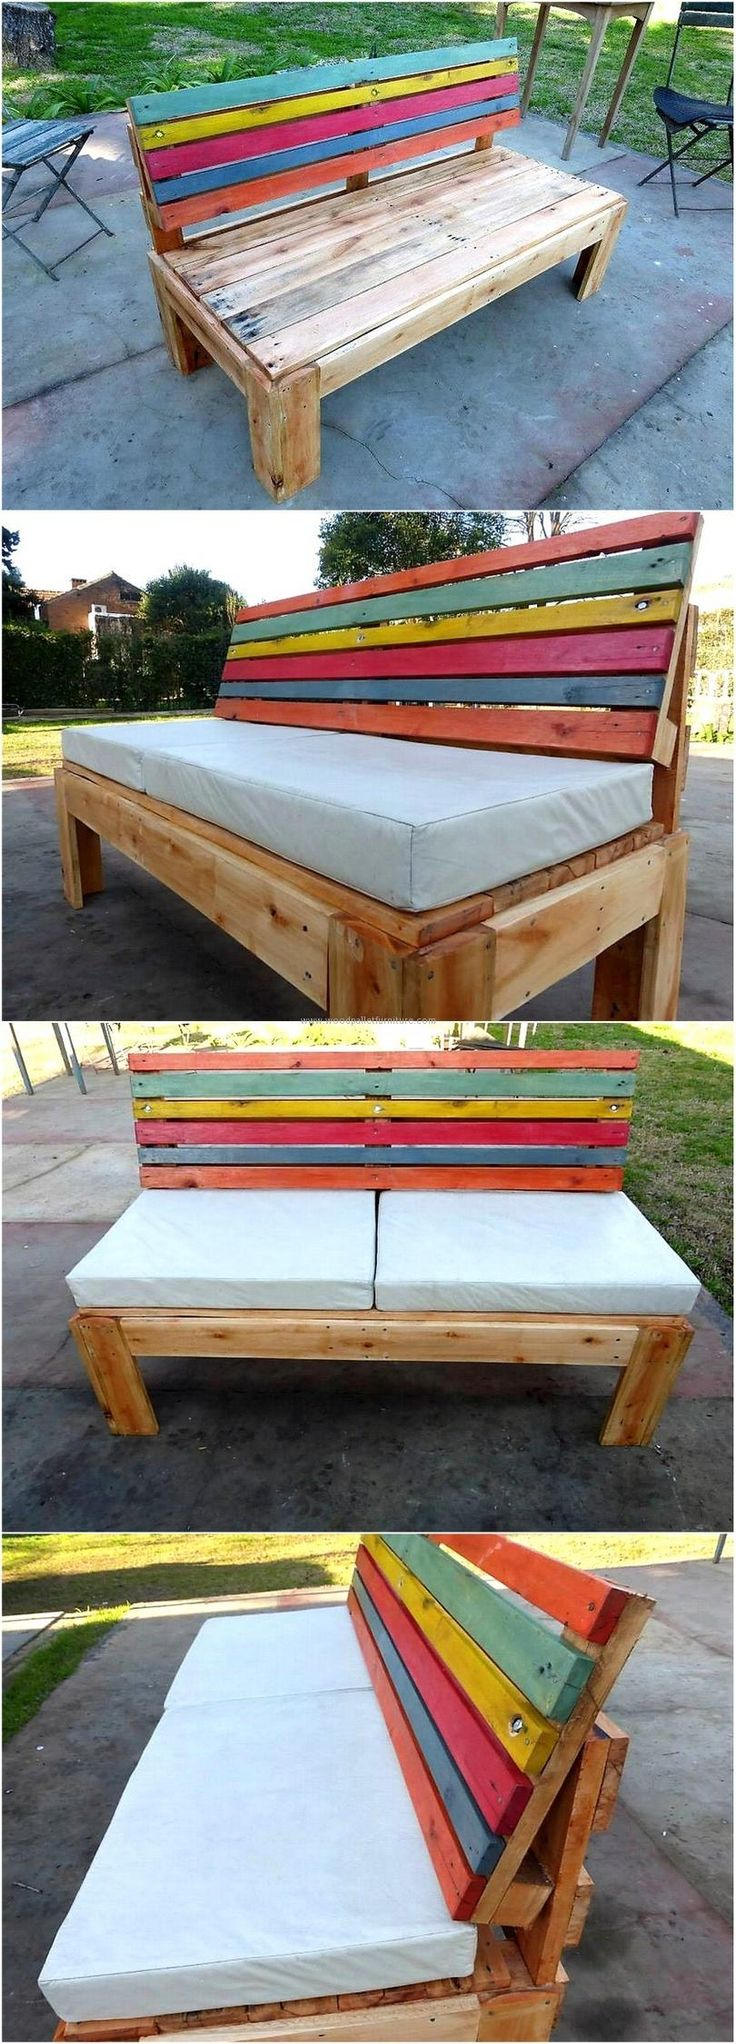 painted pallet furniture. awesome pallet wooden furniture plans painted